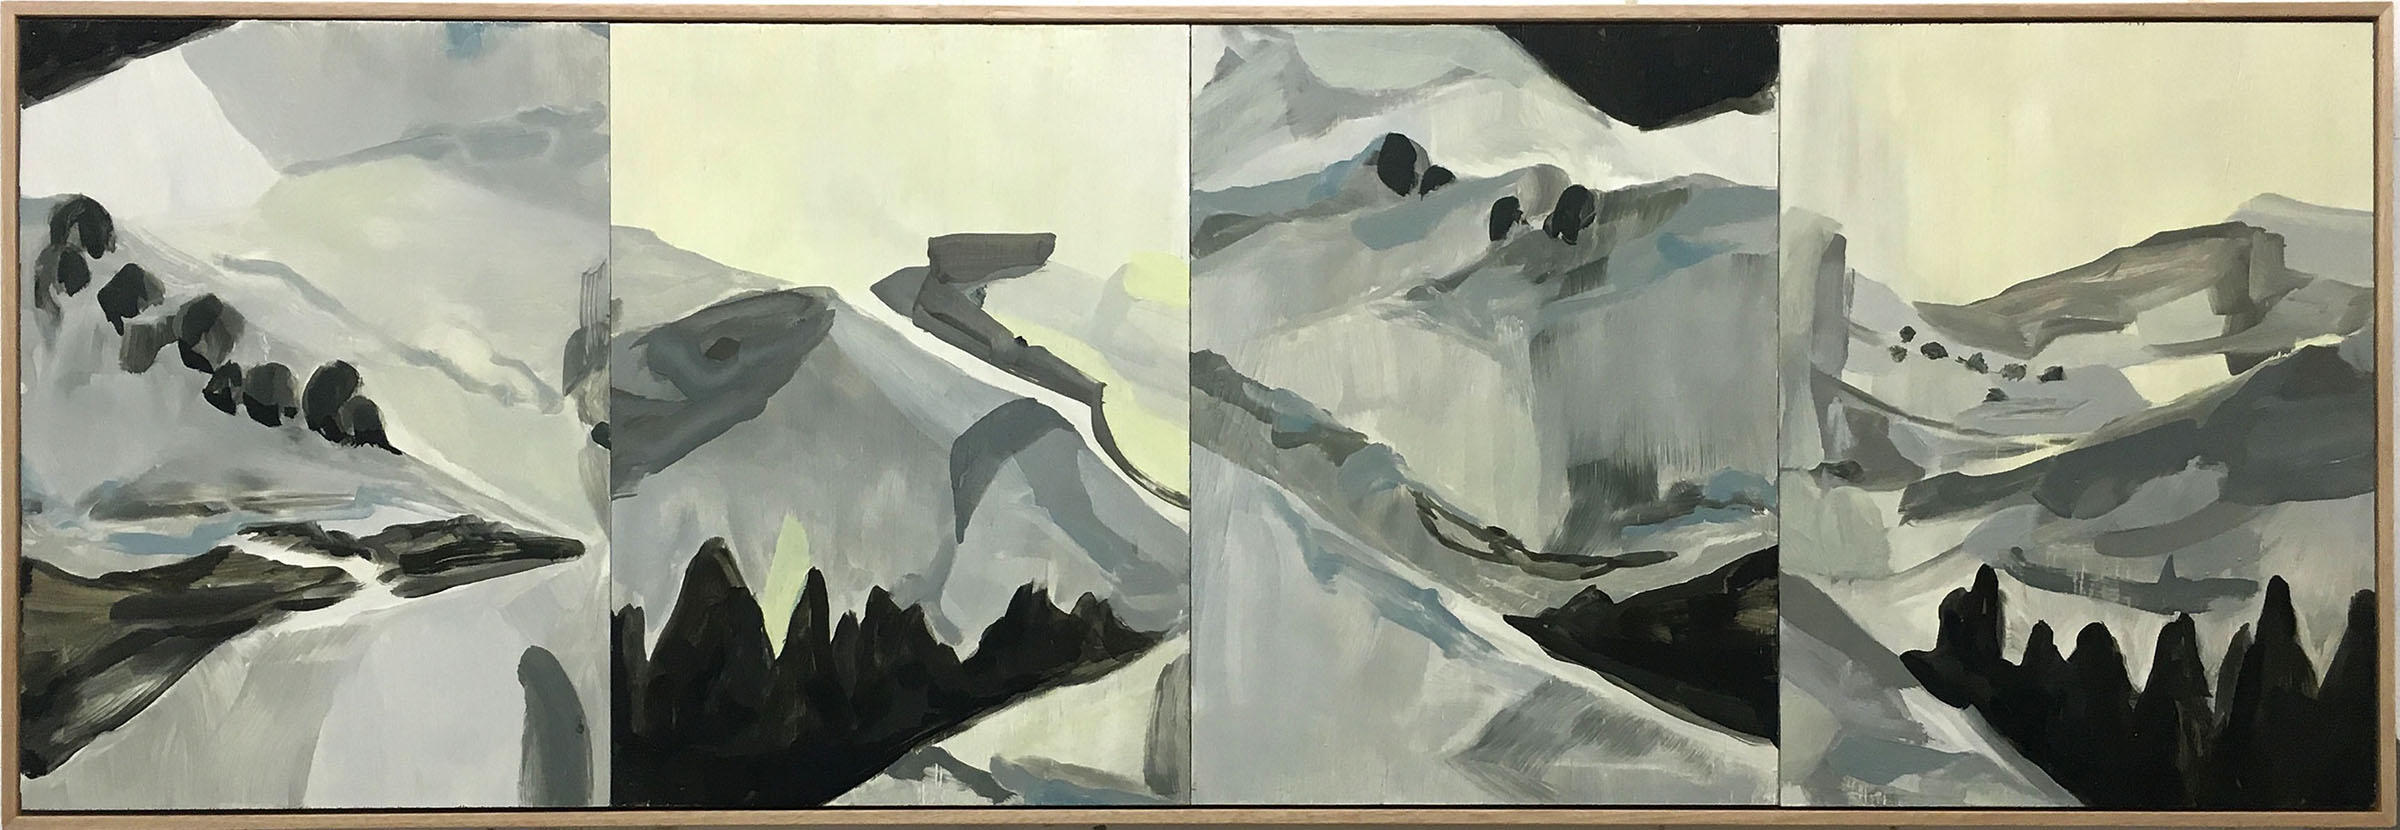 HWY Scapes, Oil on Board,  43 x 122 cm